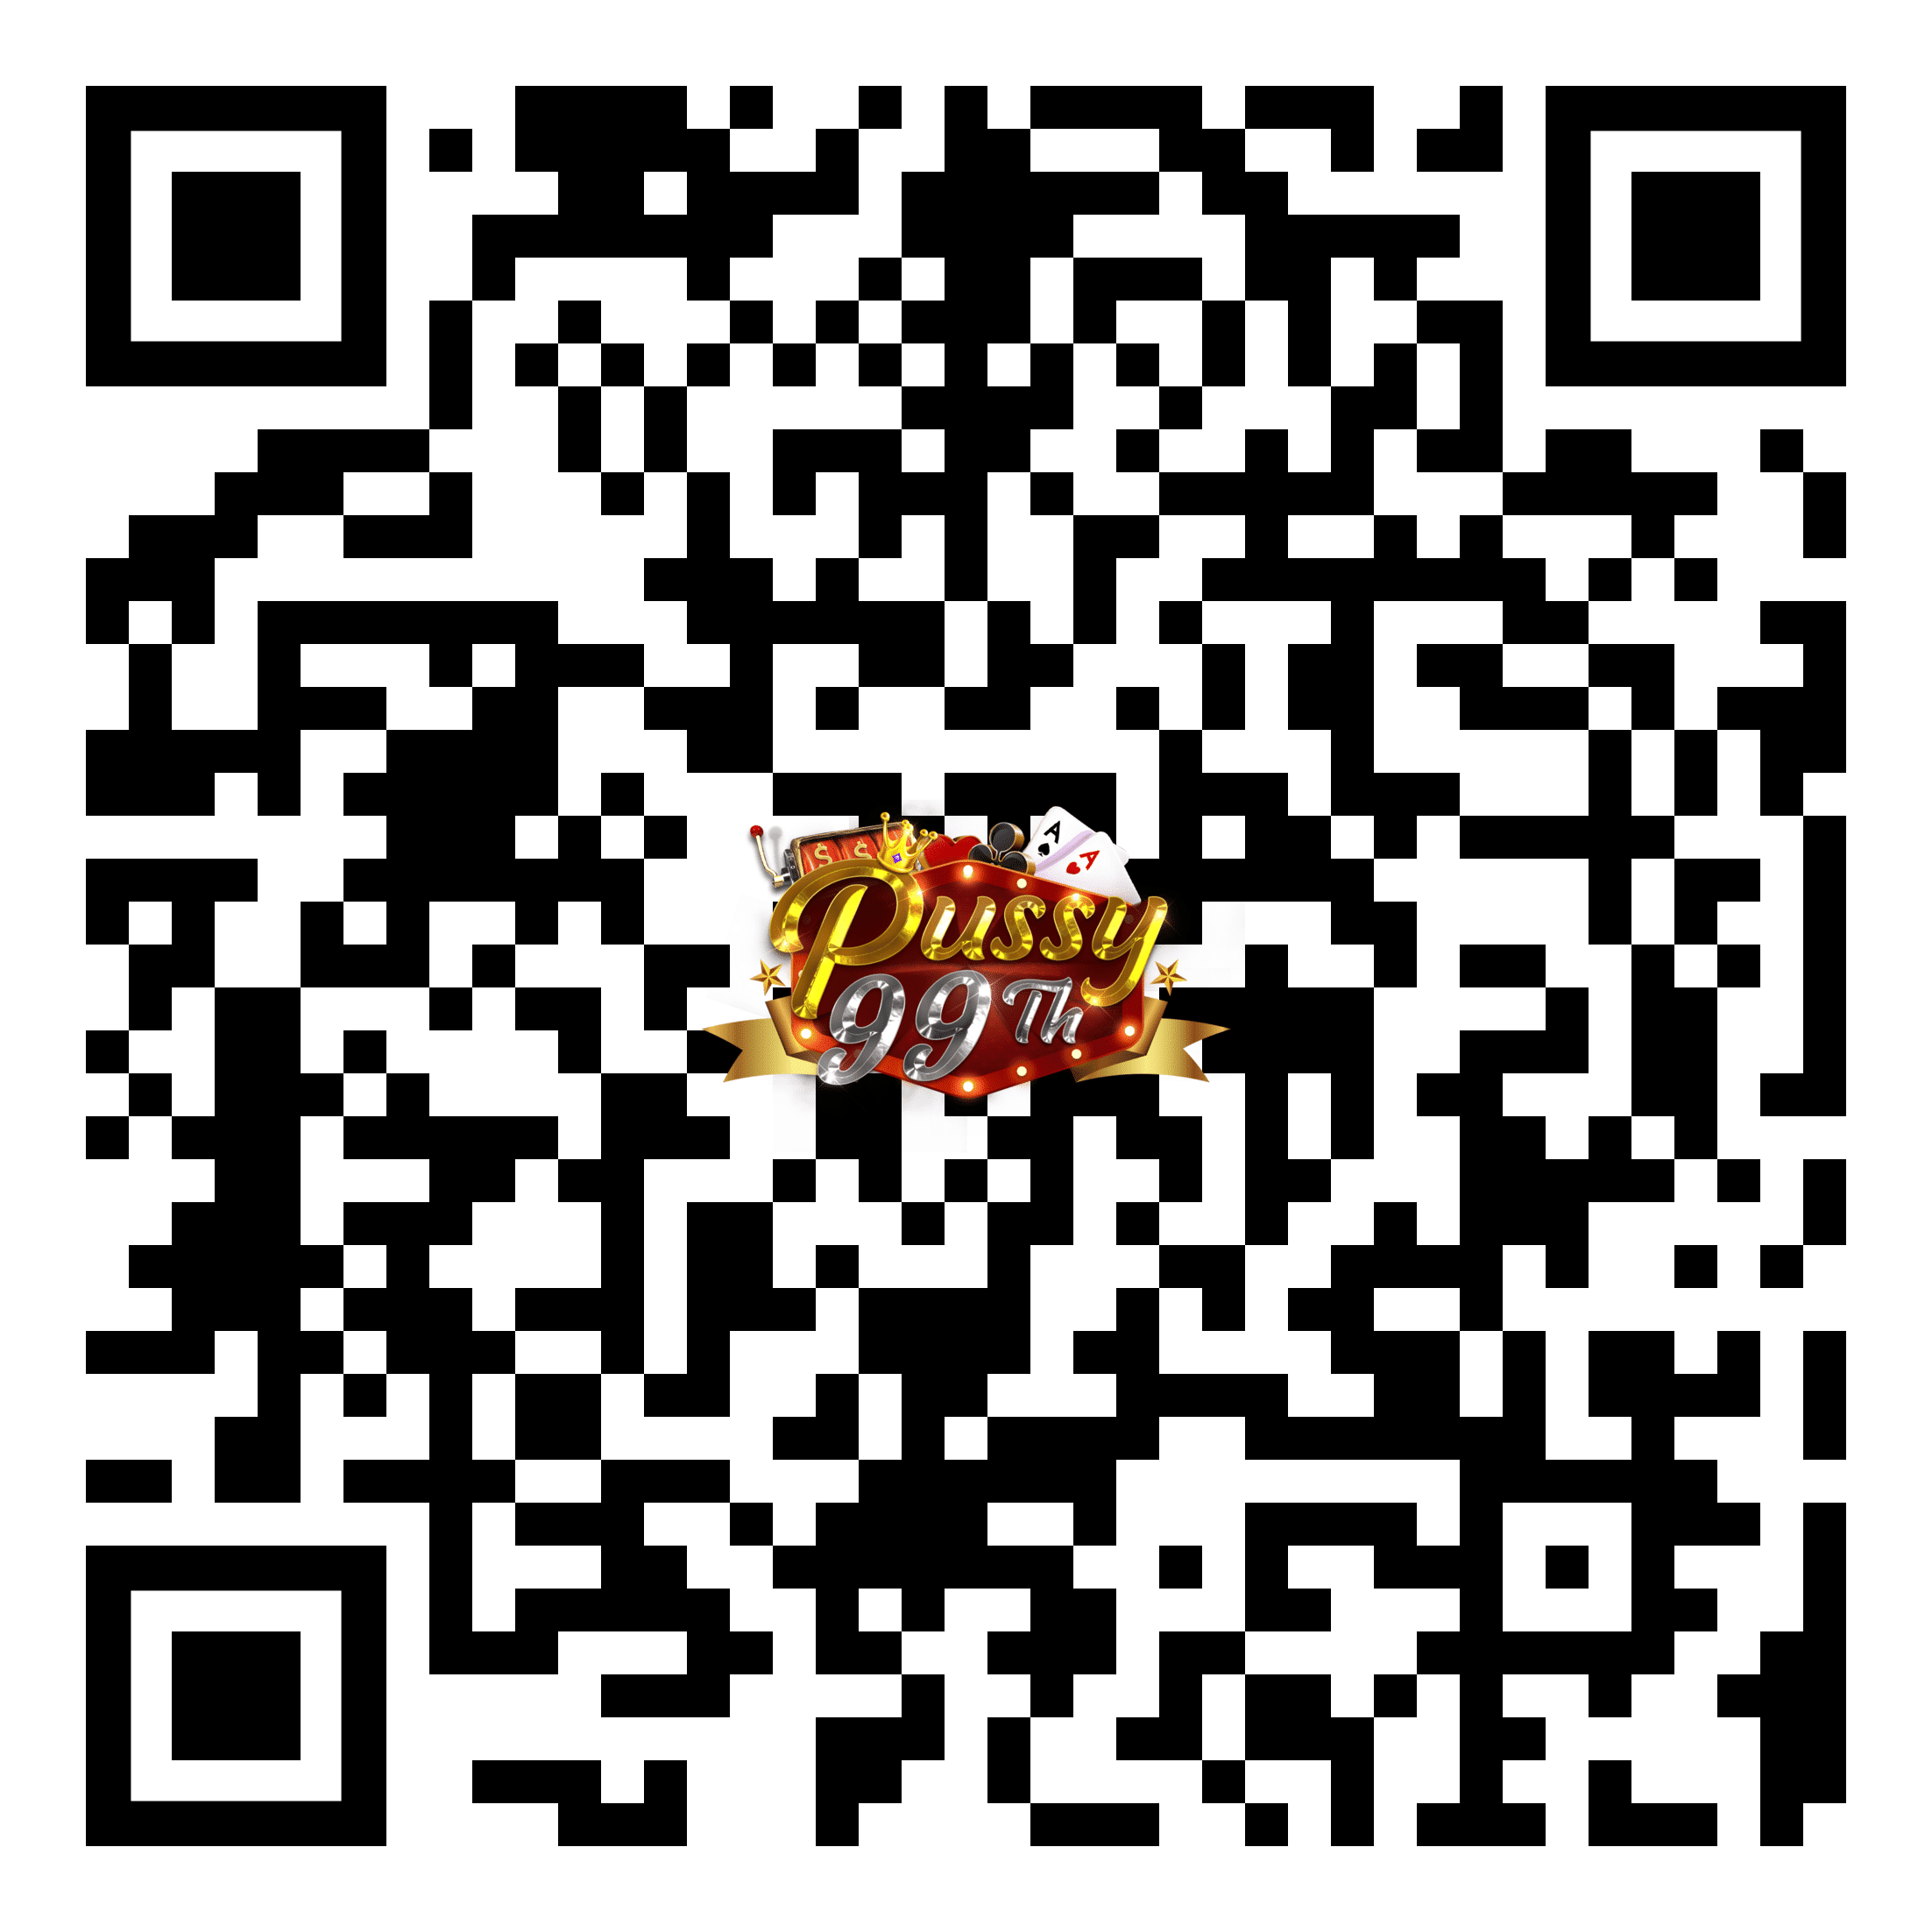 pussy888 android qrcode